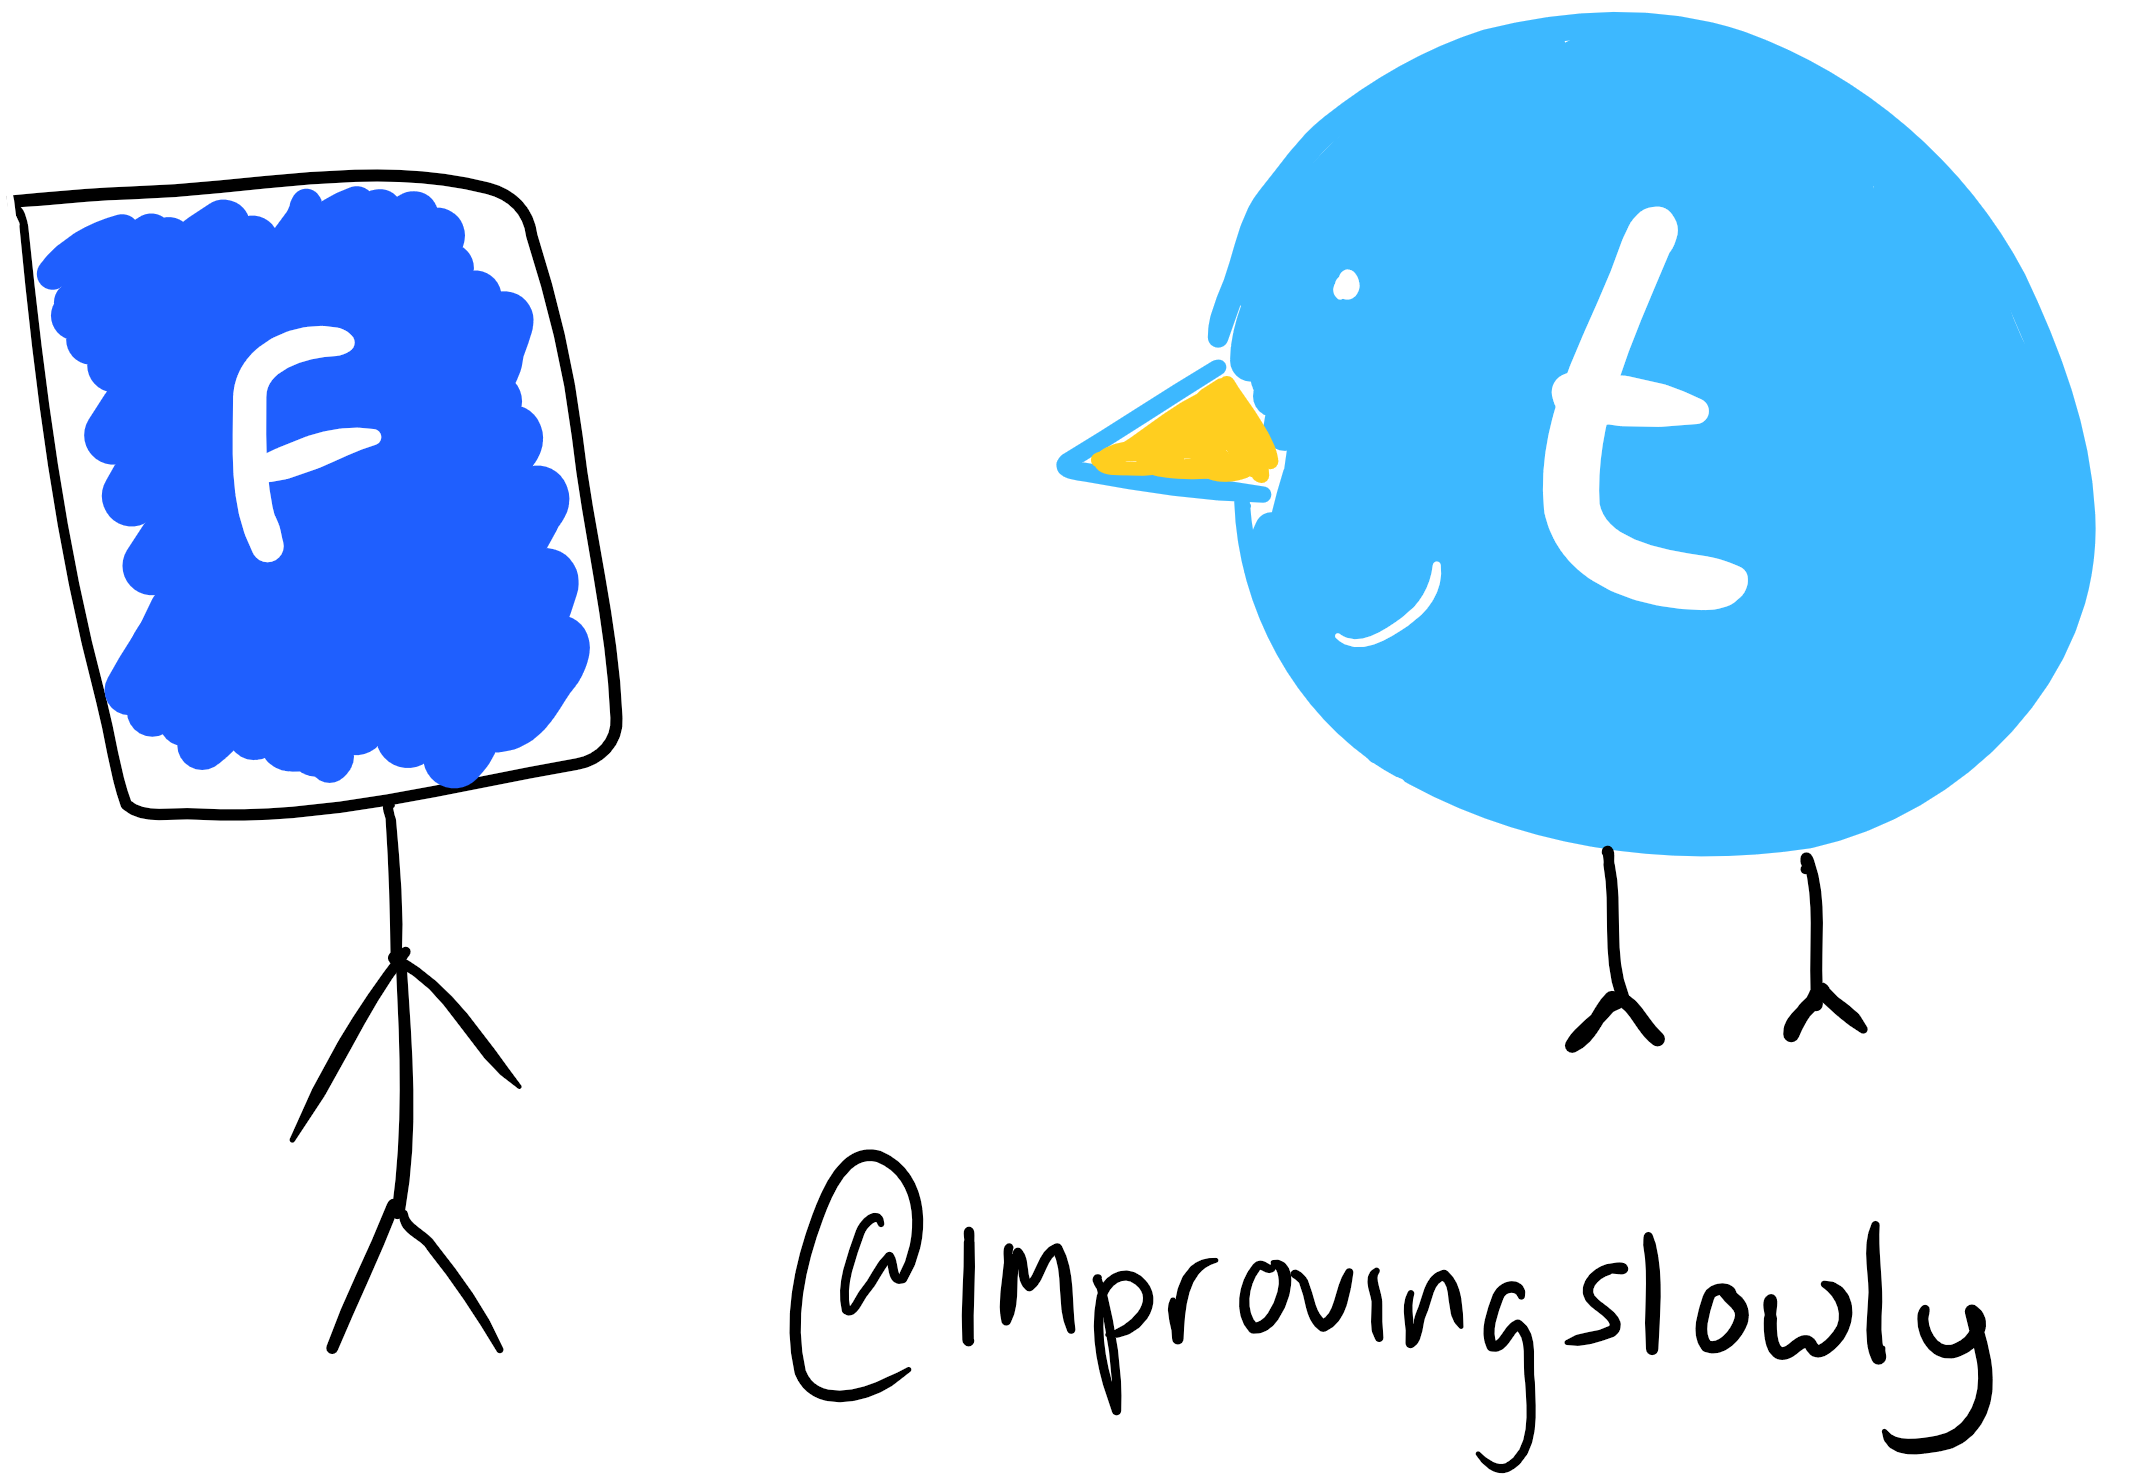 twitter and facebook mascots :D